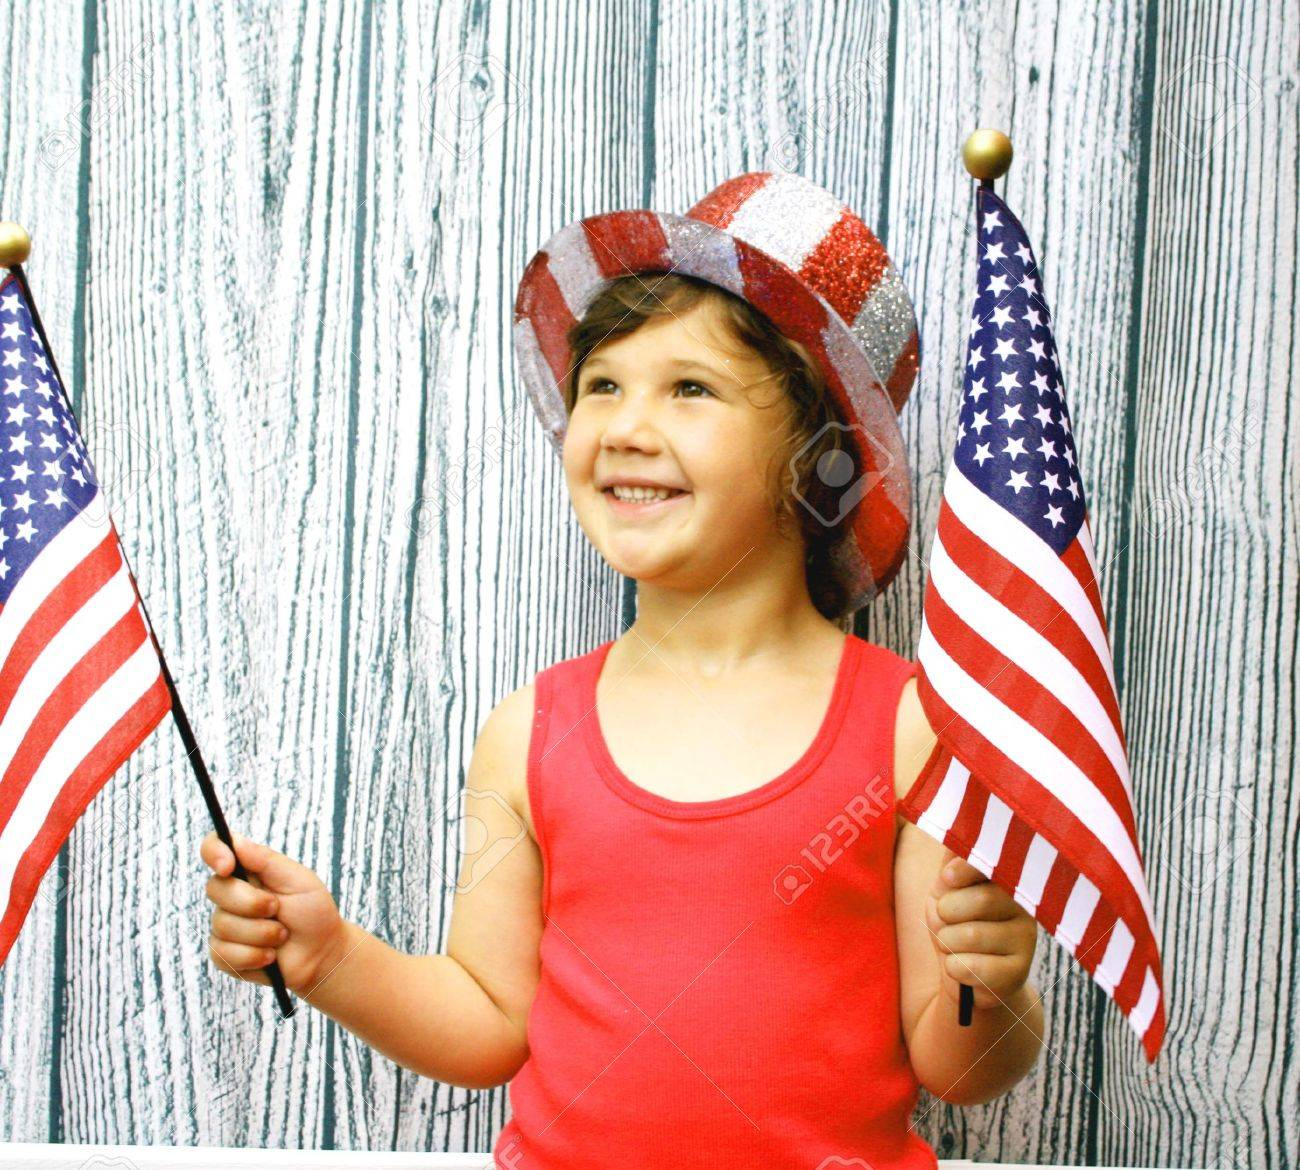 Young girl with 4th of july hat and flags Stock Photo - 5019354